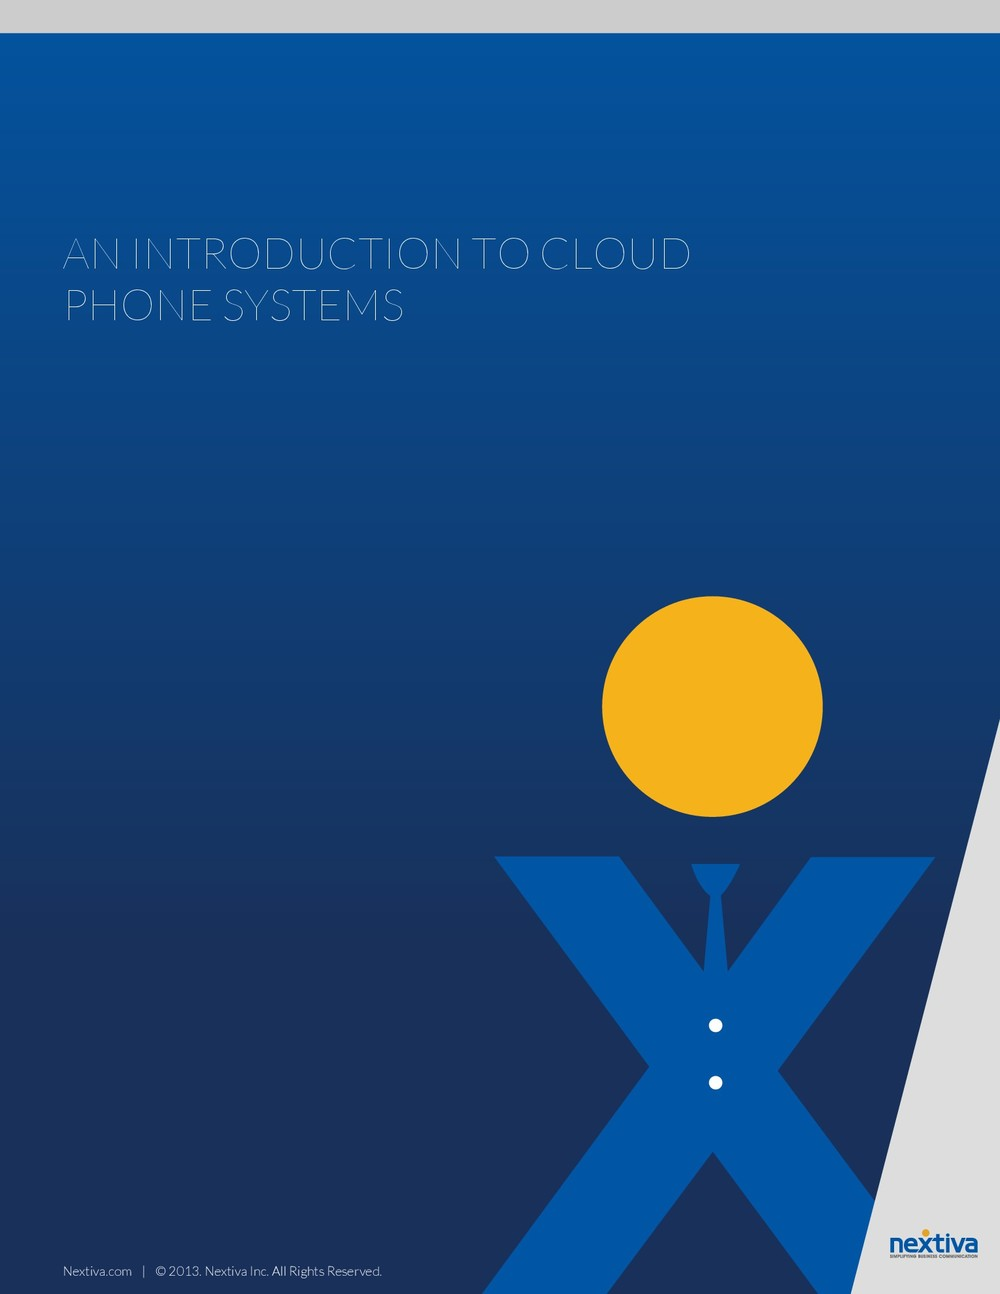 Nextiva: An Intro to Cloud Phone Systems